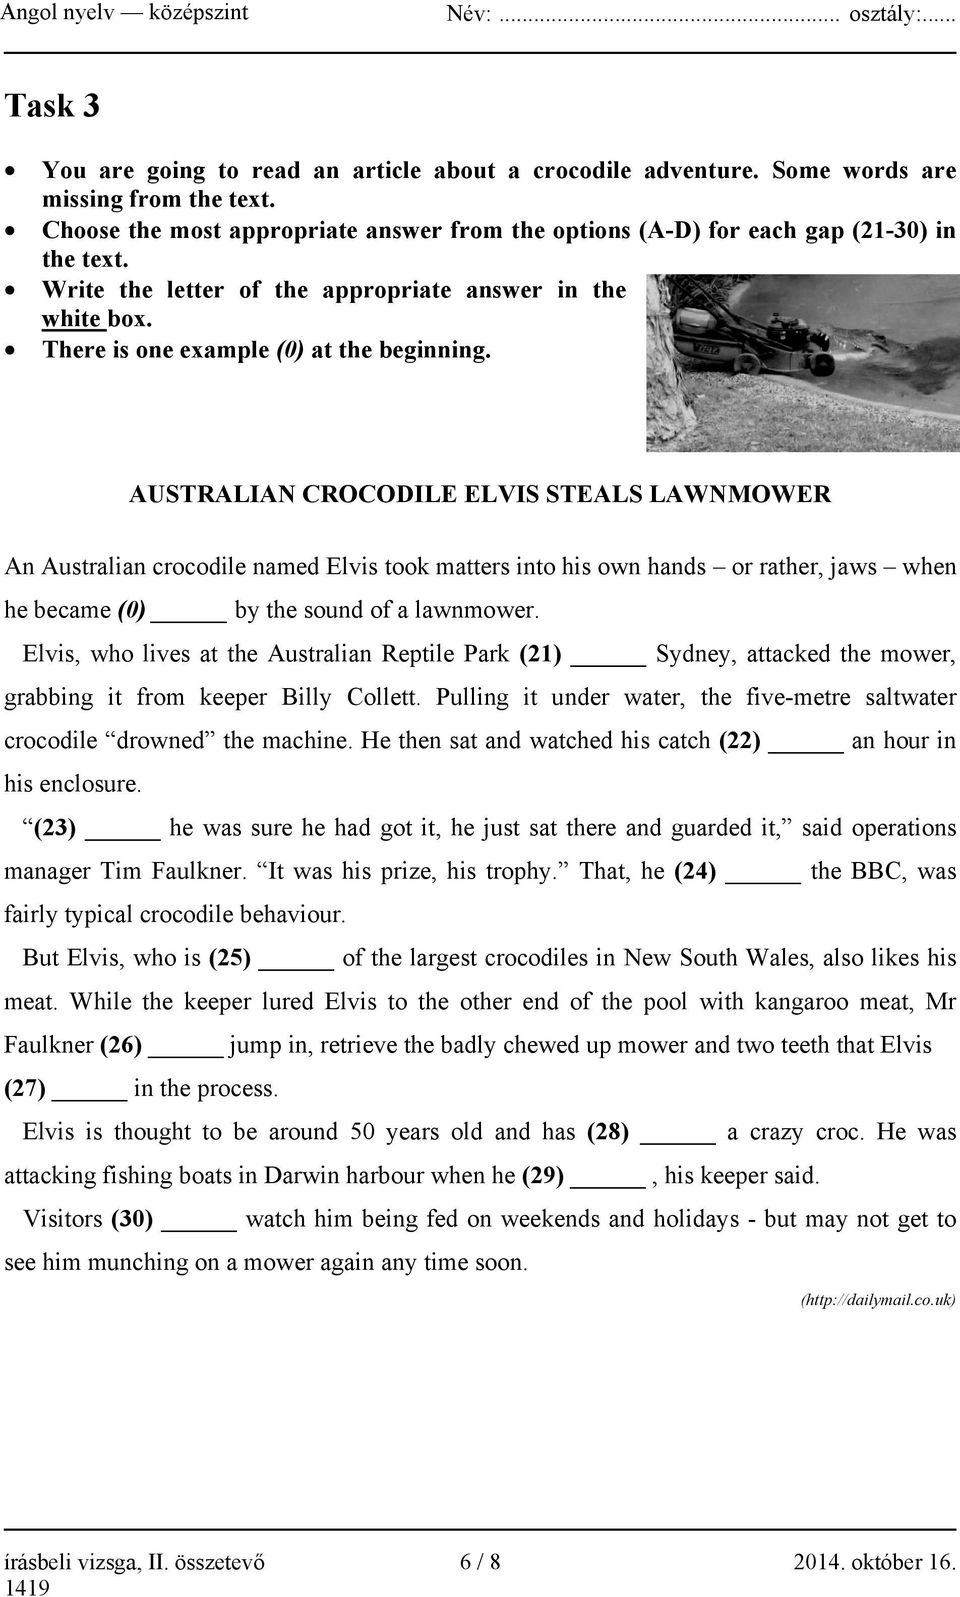 AUSTRALIAN CROCODILE ELVIS STEALS LAWNMOWER An Australian crocodile named Elvis took matters into his own hands or rather, jaws when he became (0) by the sound of a lawnmower.